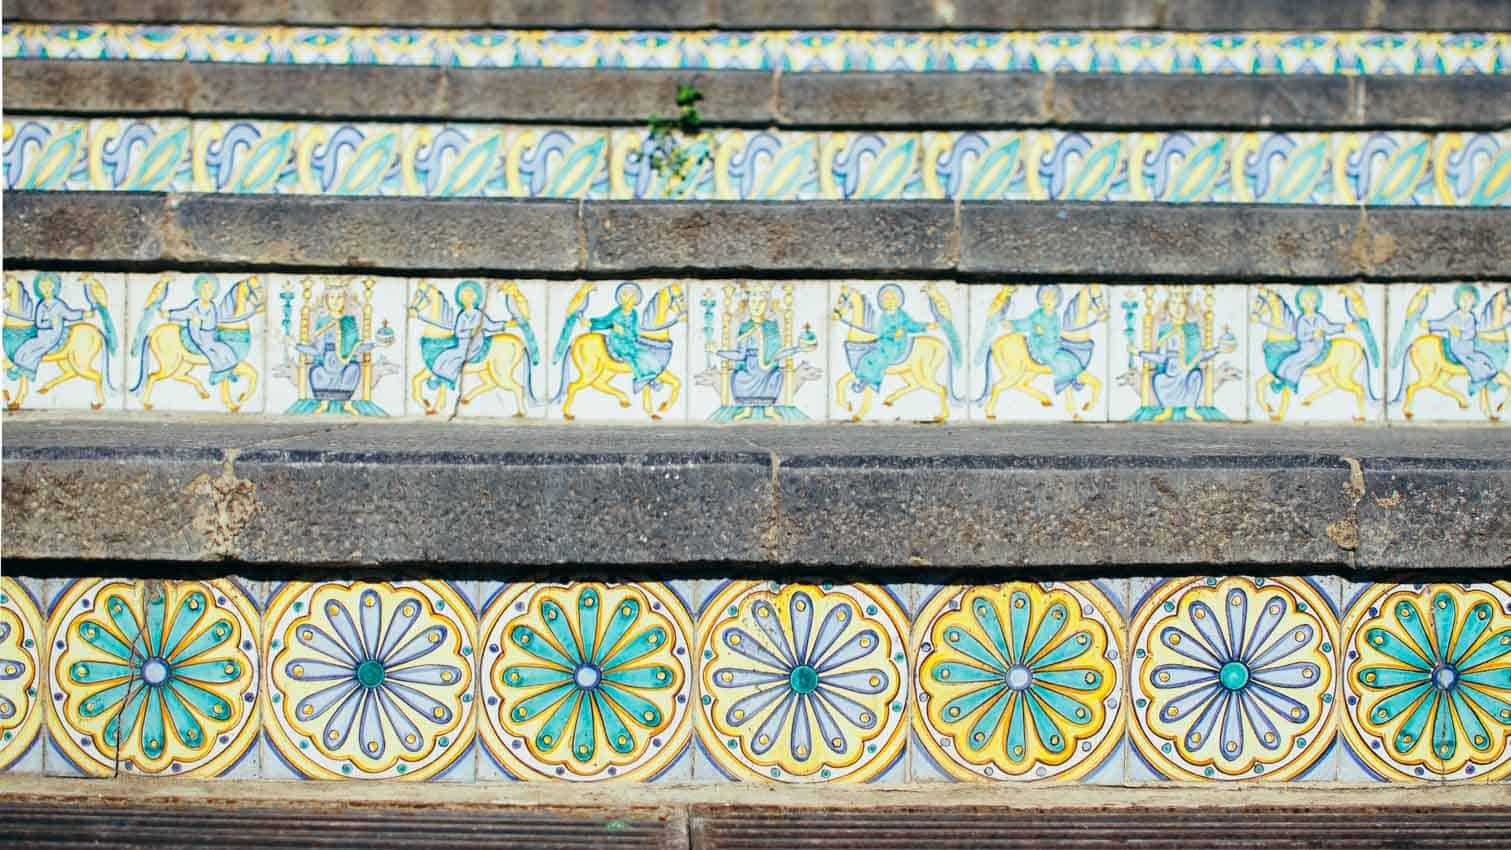 Trip to Sicily: The famouse steps in Caltagirone | Very EATalian